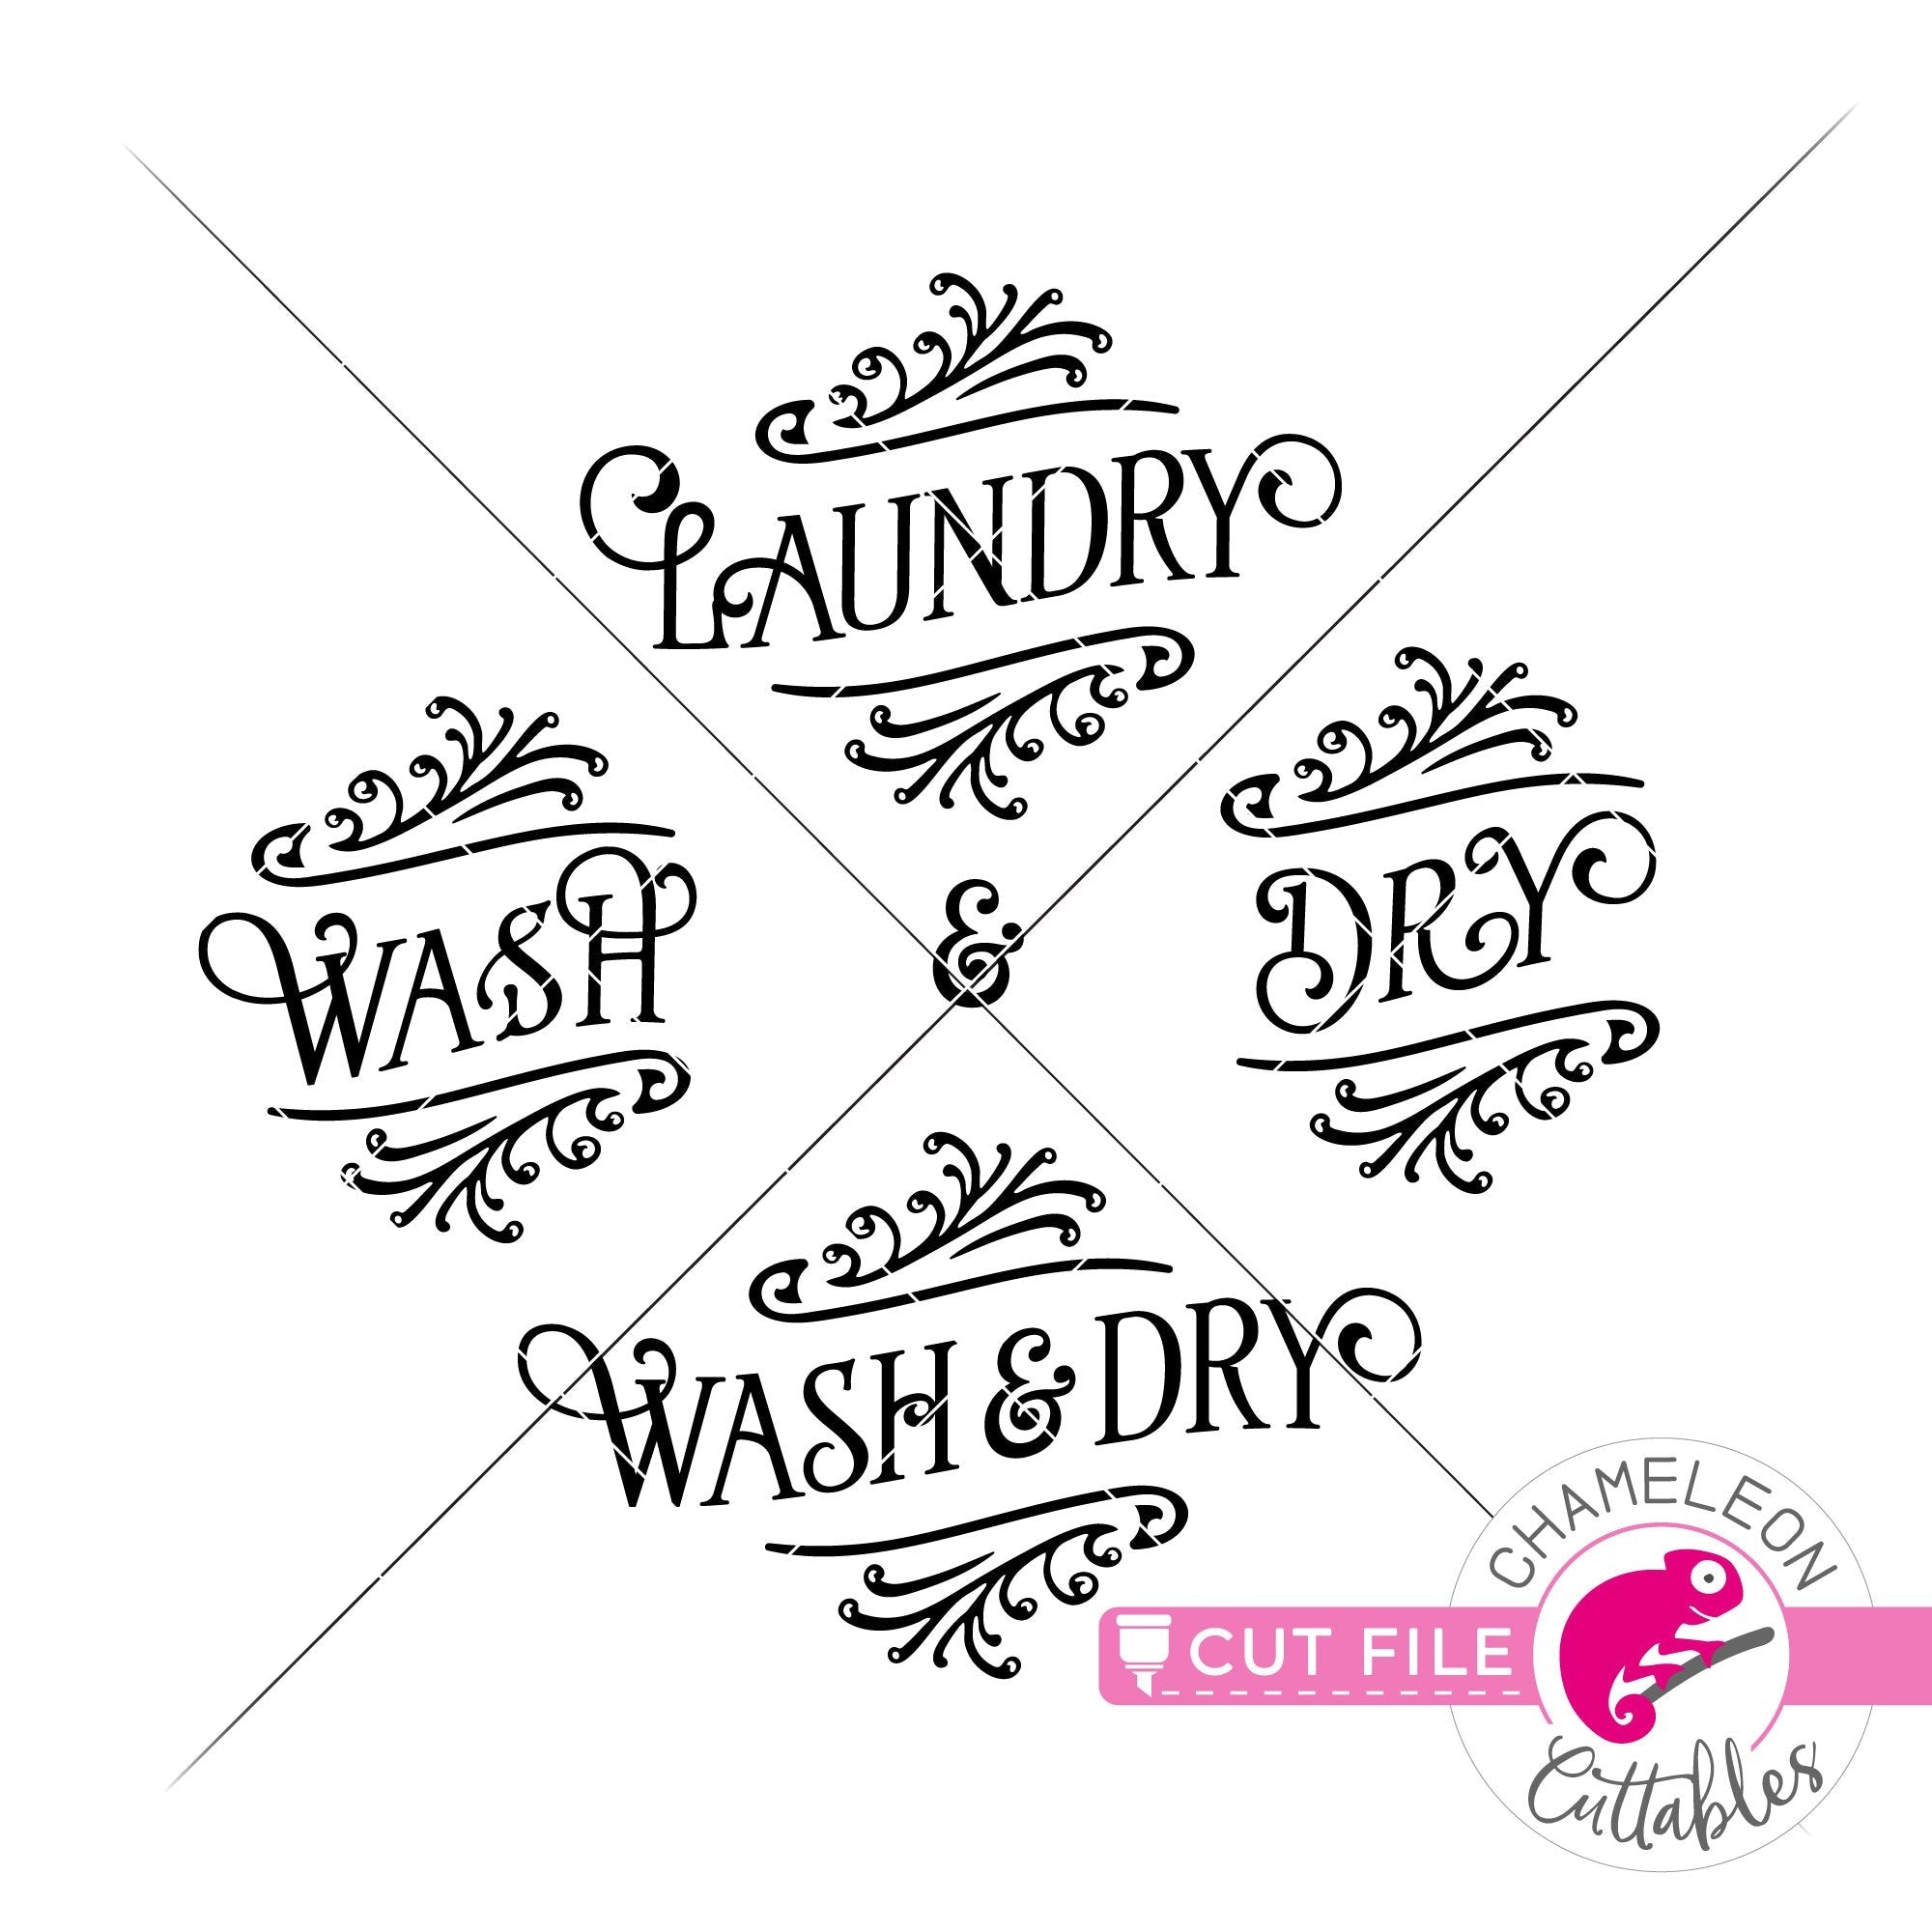 Wash And Dry Laundry Room Svg Png Dxf Eps Jpeg Chameleon Cuttables Llc